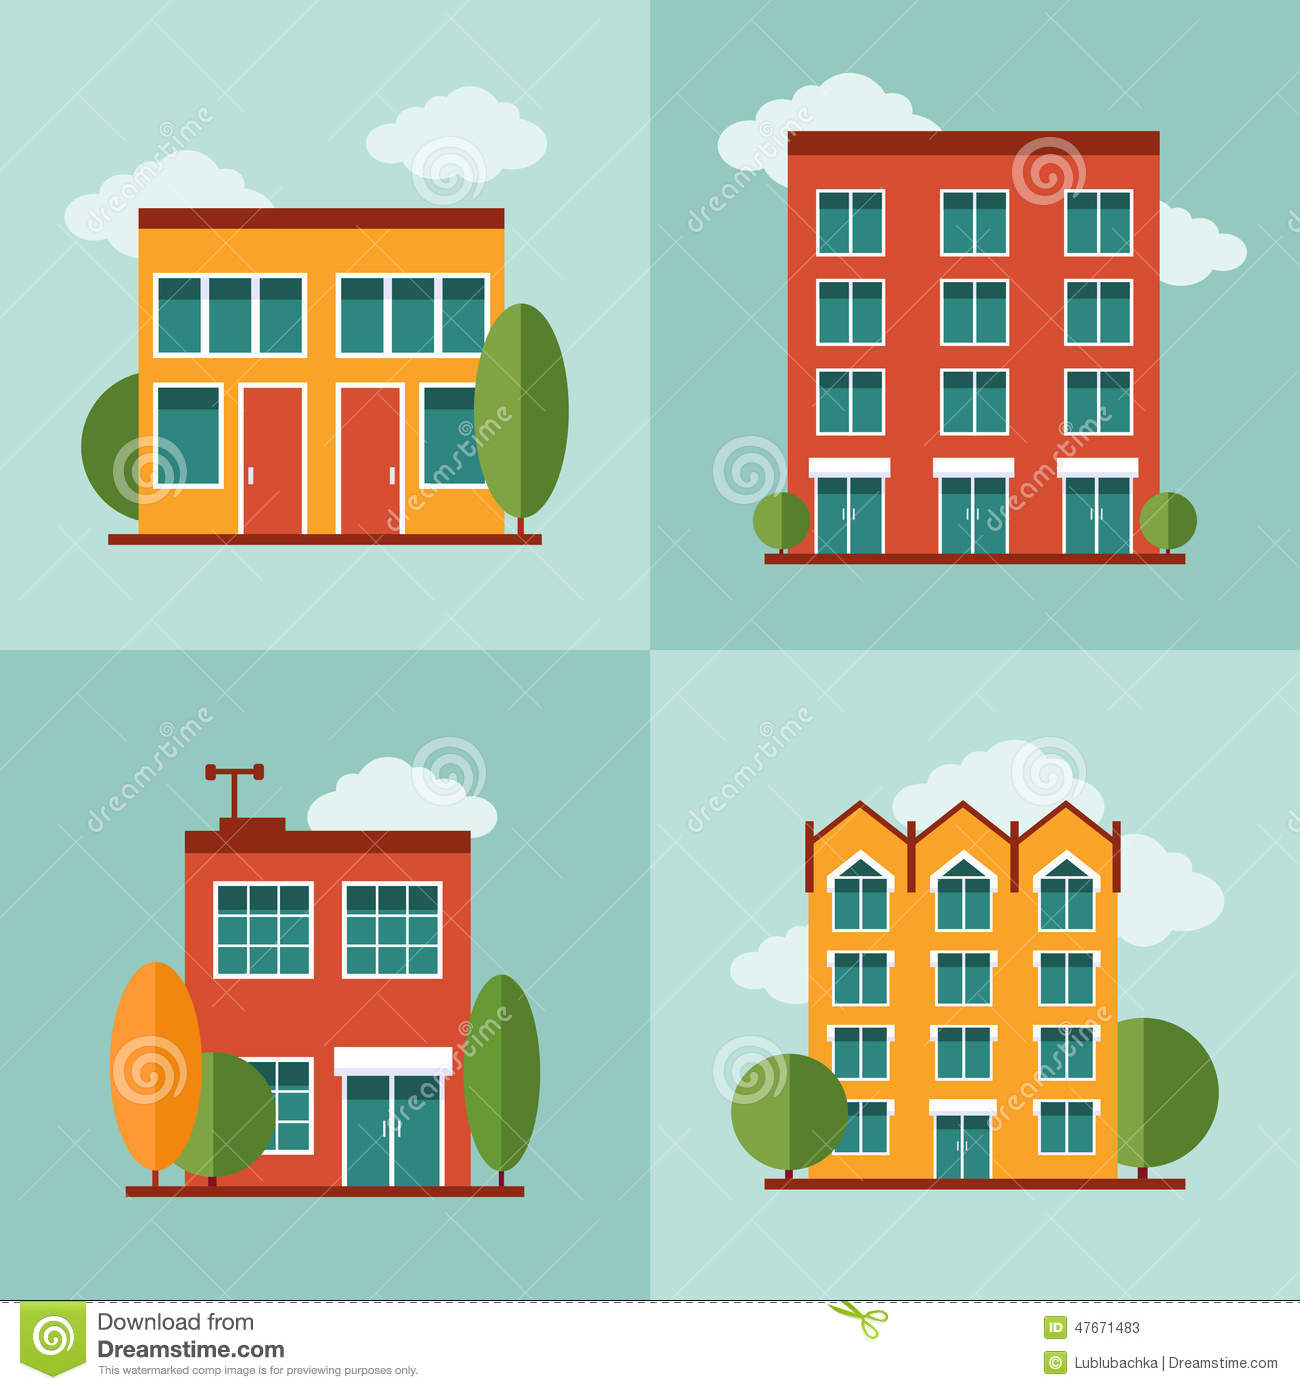 City Residential Buildings Set In Vector Flat Style Stock Vector Illustration 47671483